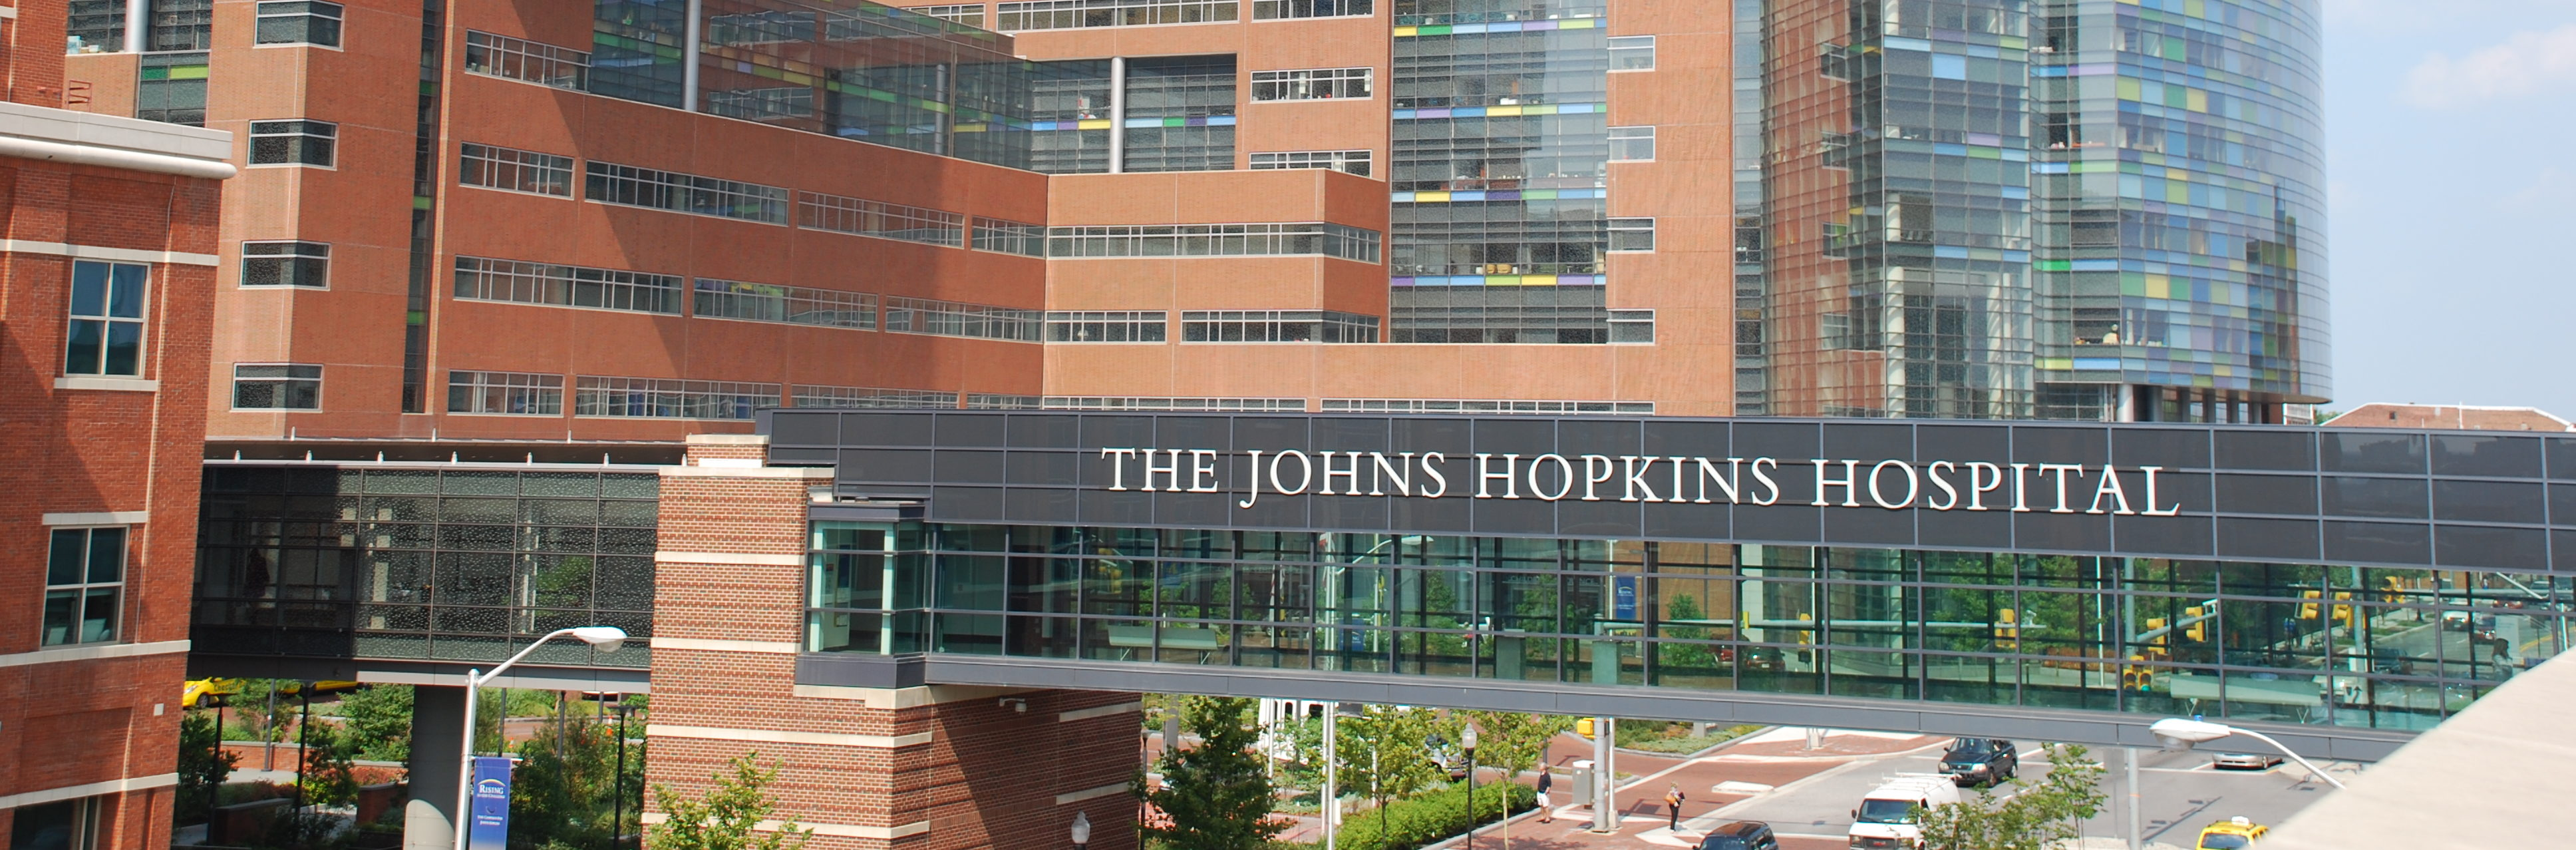 Johns hopkins voice center bethesda